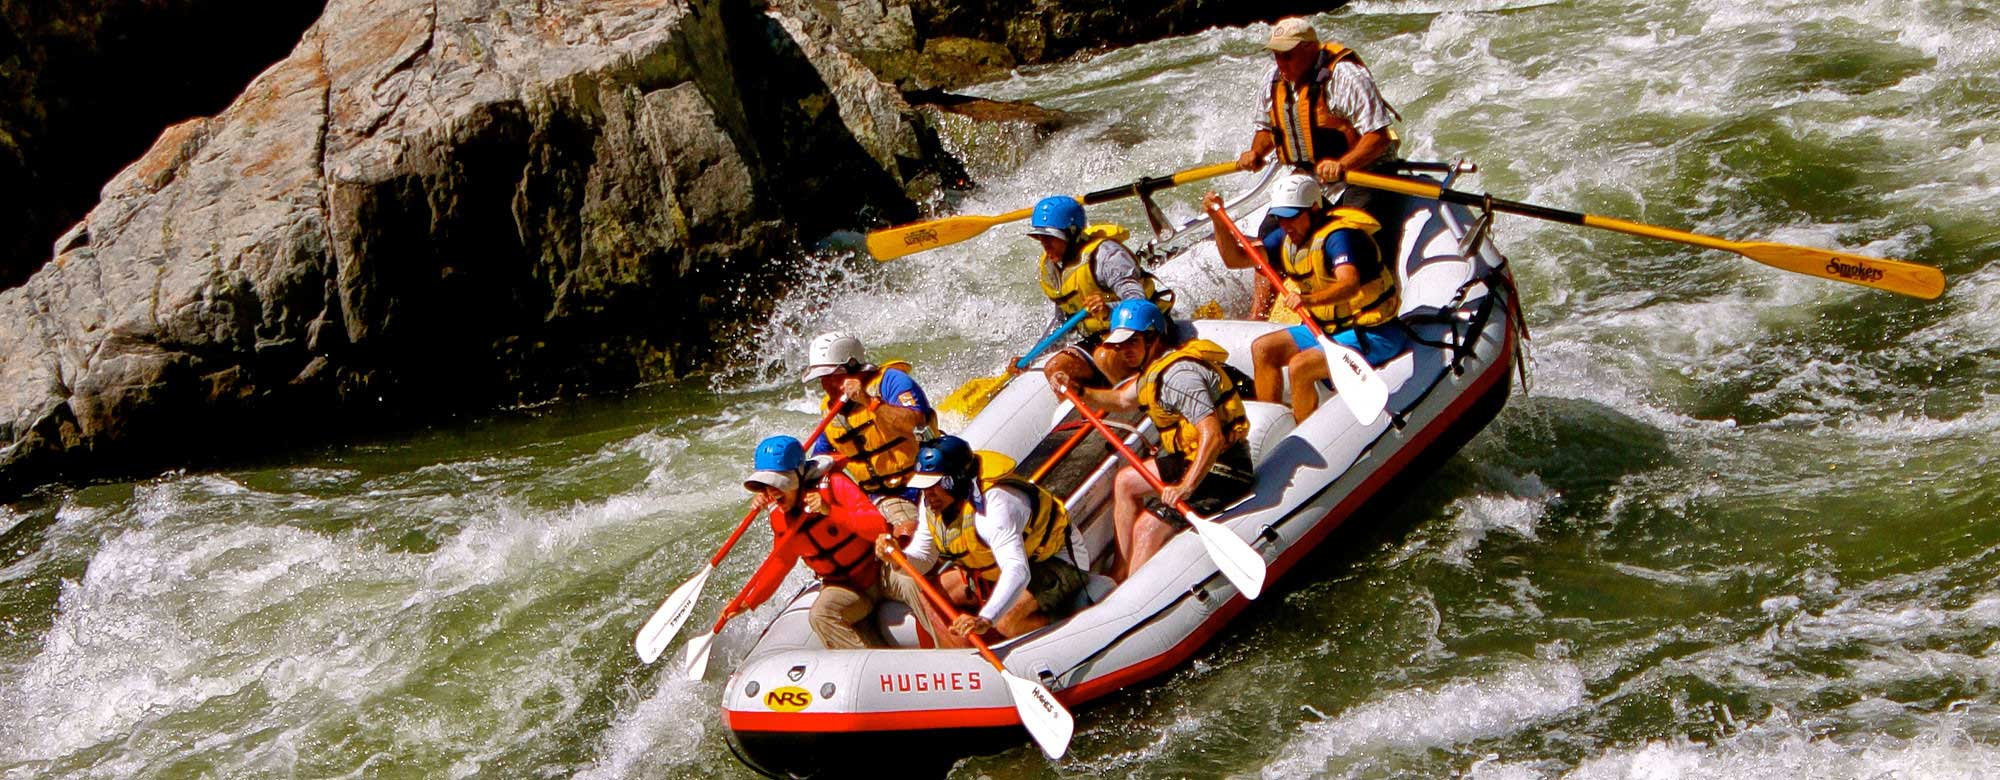 white-water-rafting-in-idaho-1